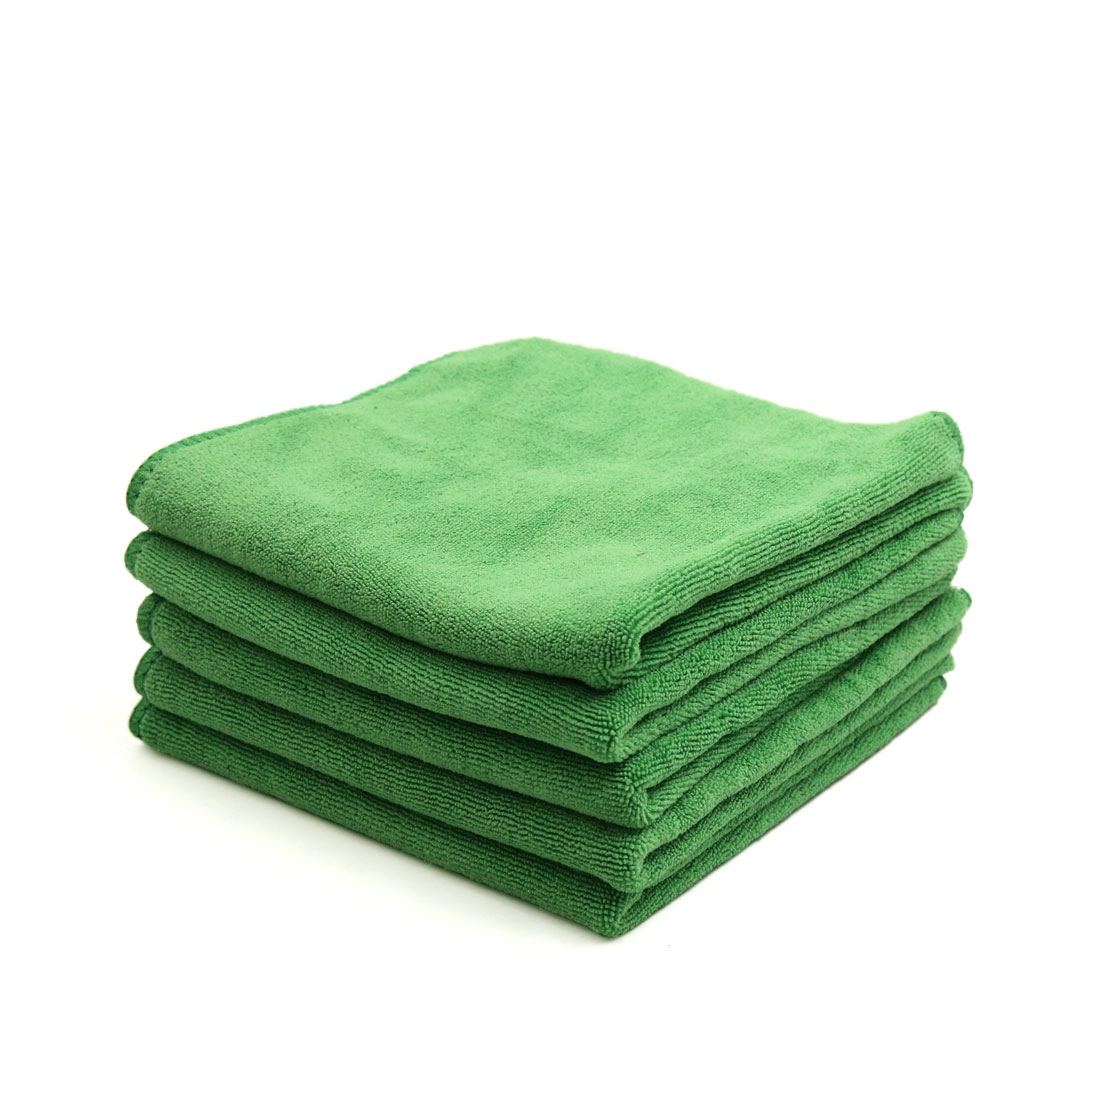 5pcs 400GSM 33 x 33cm Green Microfiber Polishing Cleaning Towel for Car Home